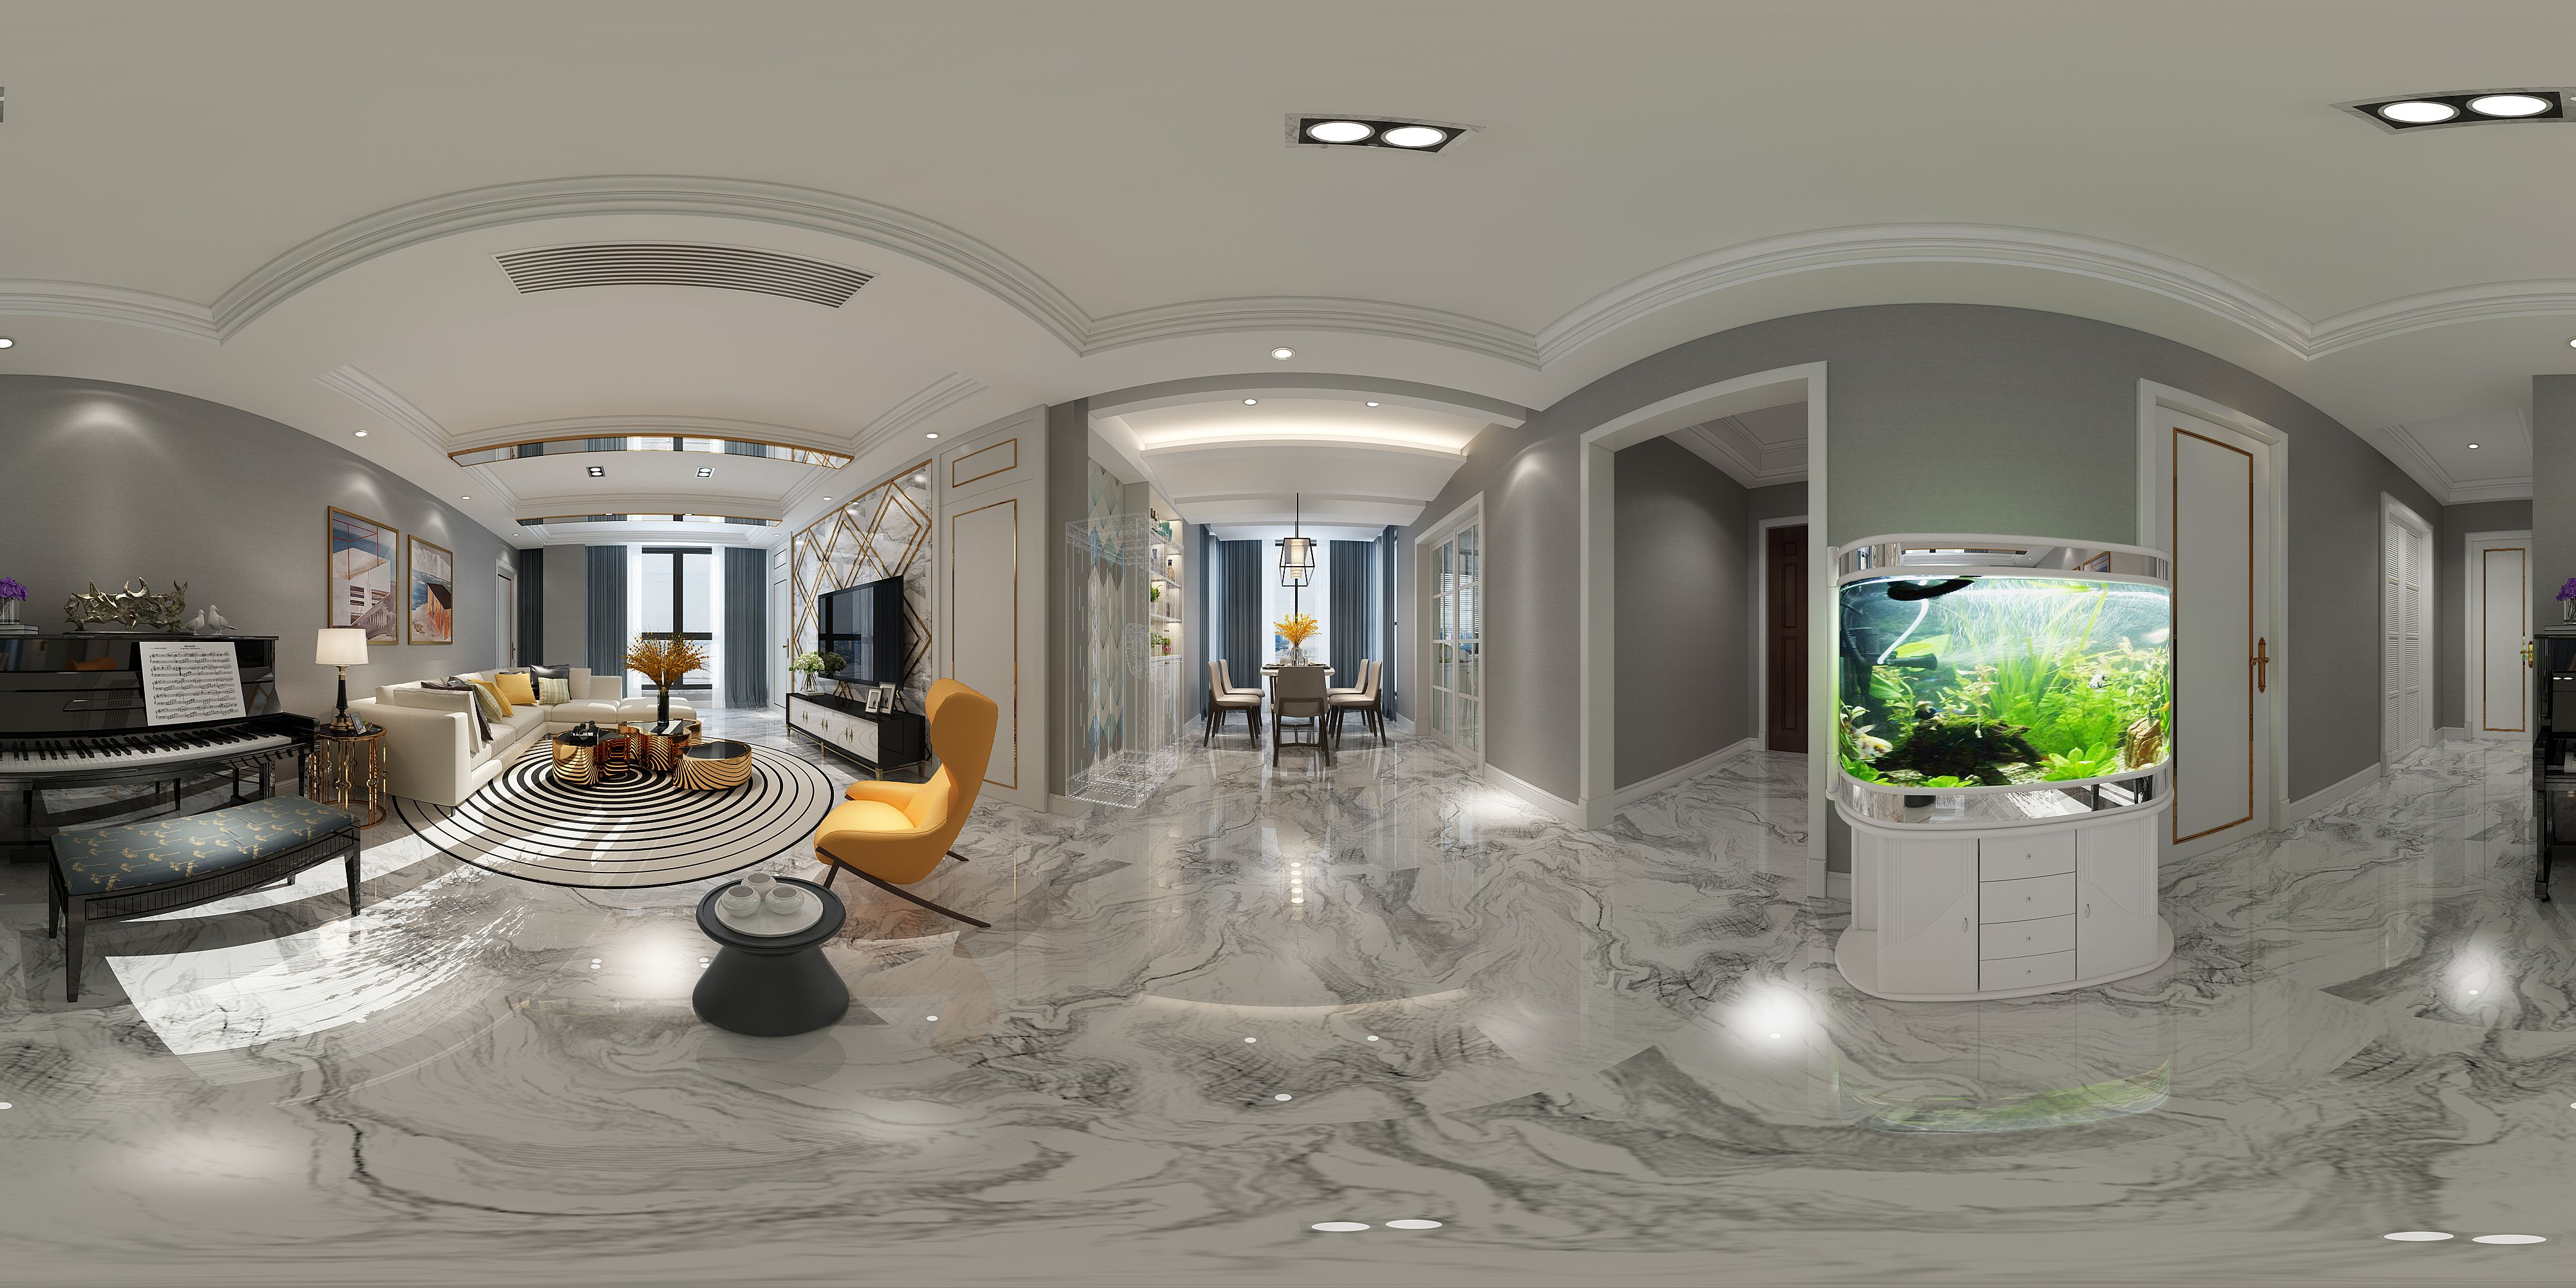 Google Street View Trusted Photographer Professional Virtual Tour Endearing Virtual Living Room Designer Free Review